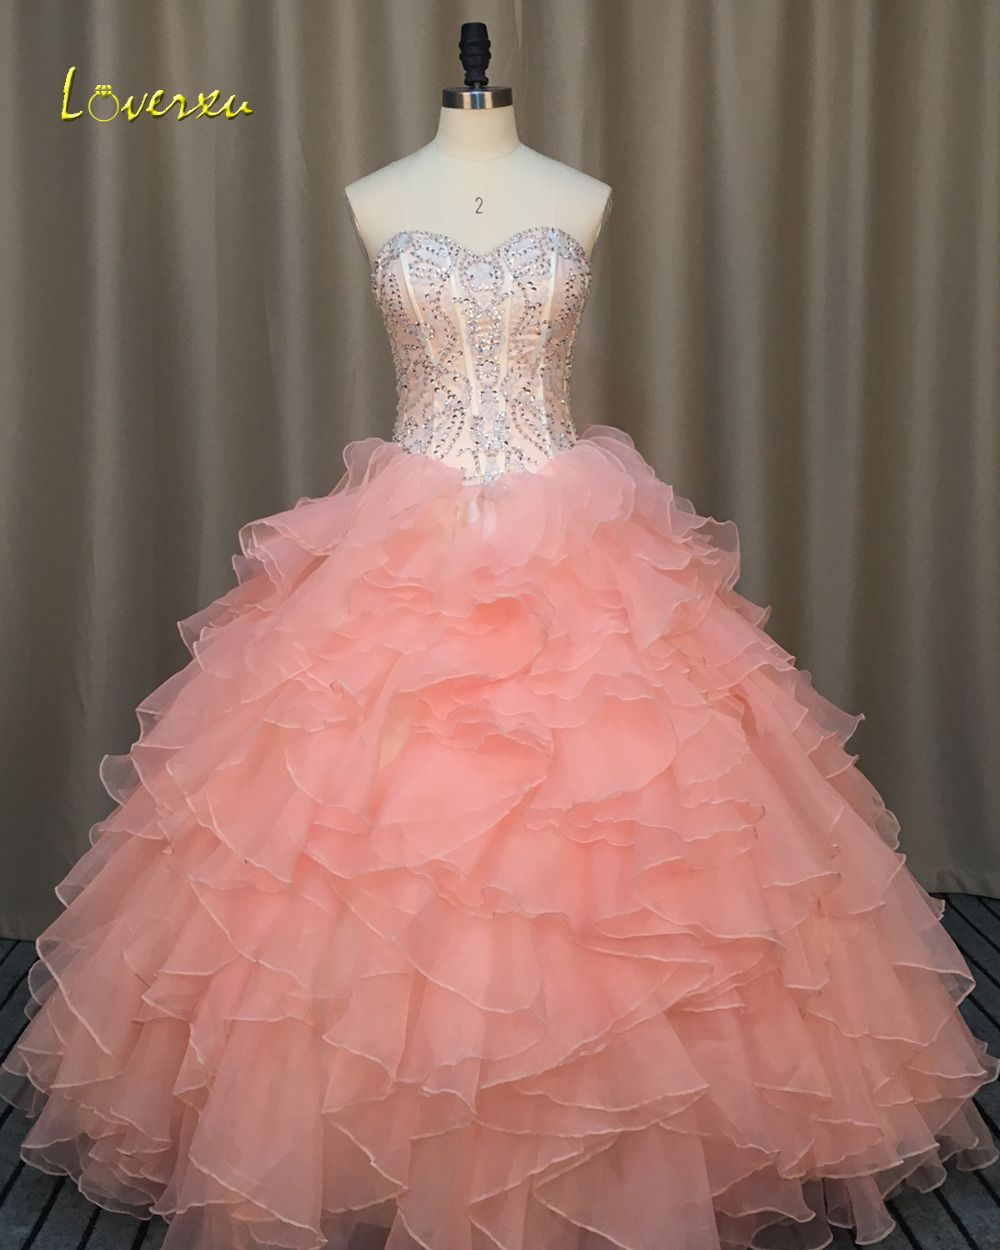 Loverxu sexy backless strapless ruffles ball gown quinceanera gown